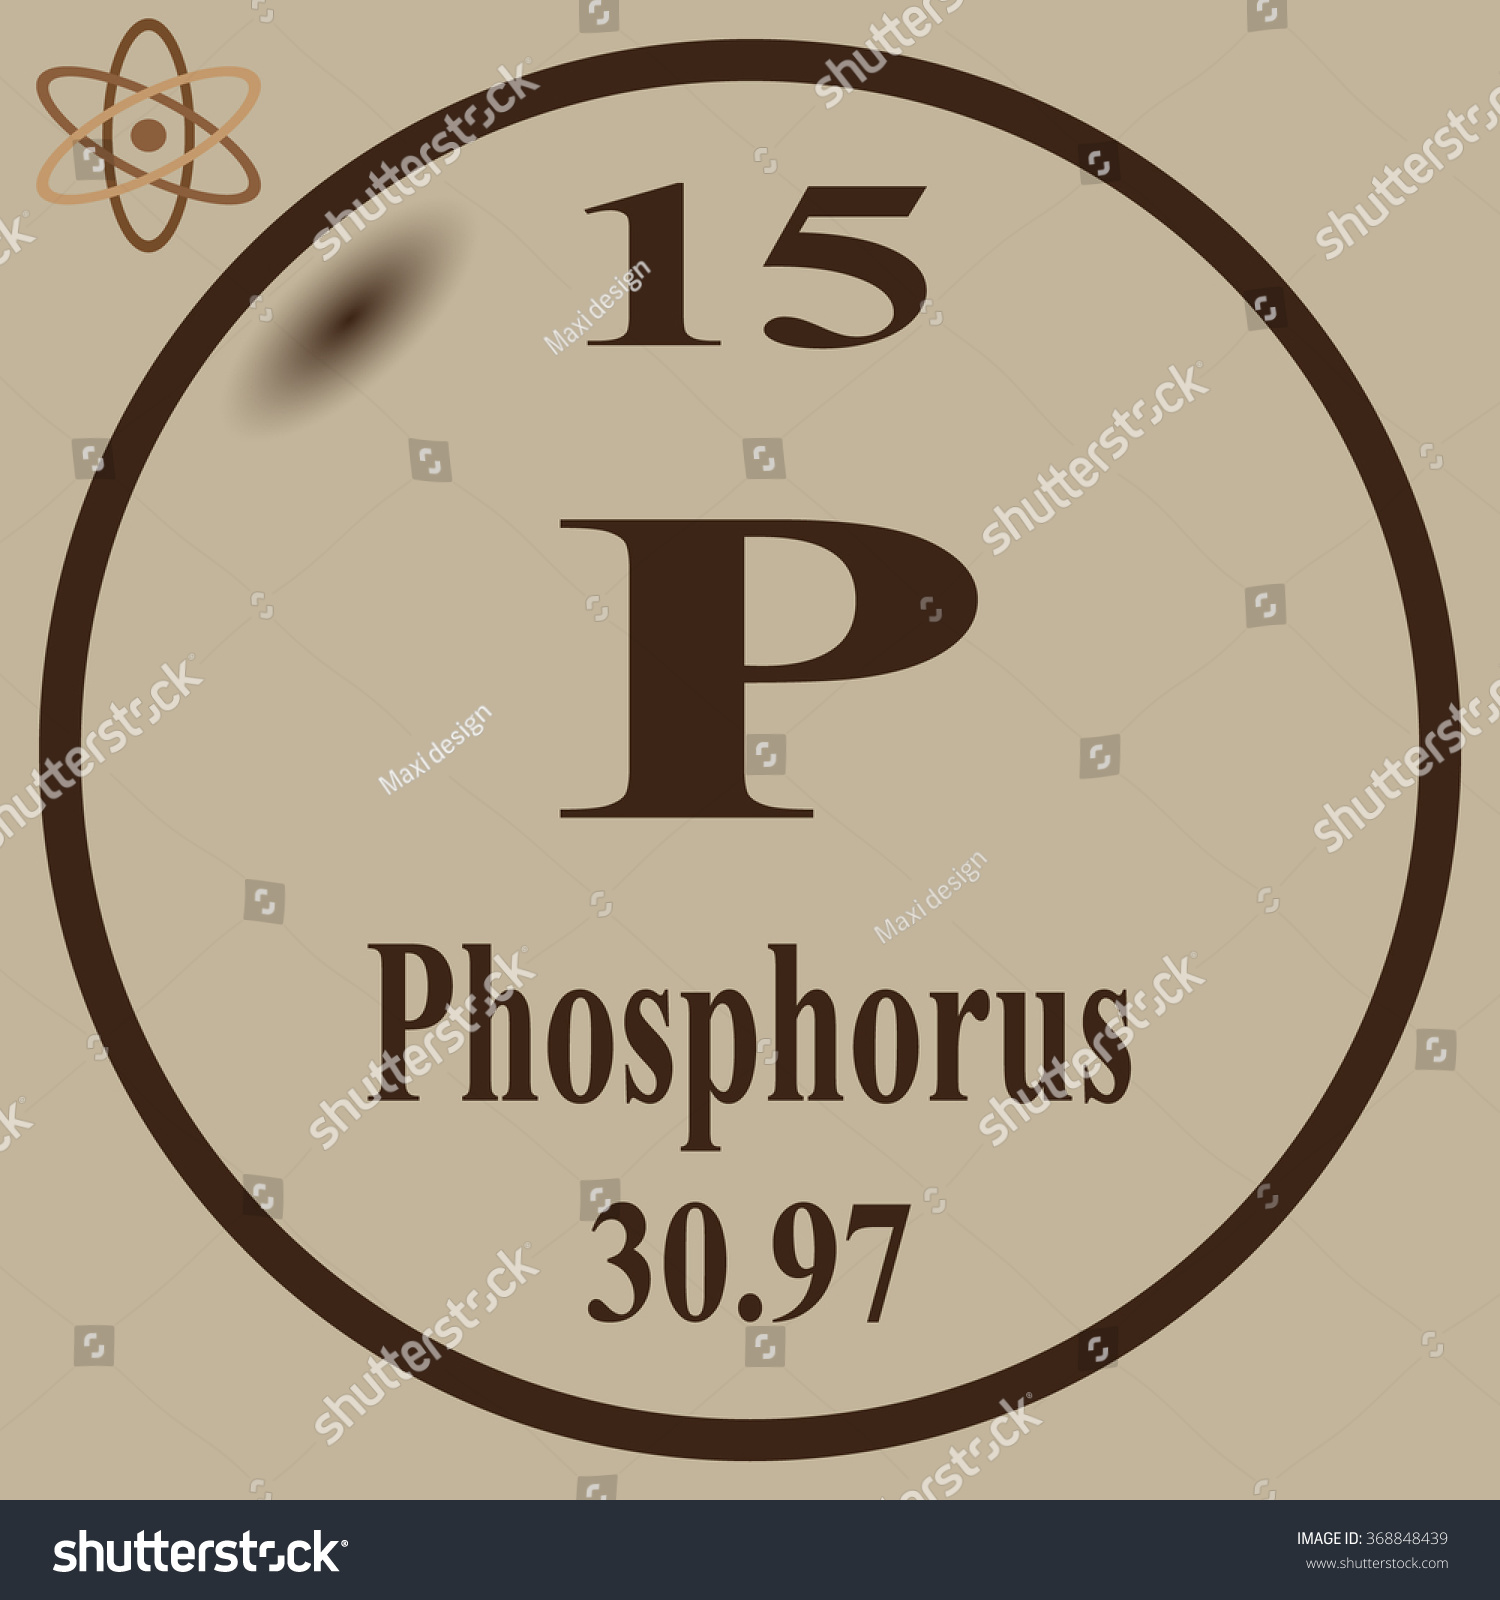 Phosphorus periodic table image collections periodic table images phosphorus element periodic table choice image periodic table images phosphorus periodic table elements stock denon receiver gamestrikefo Gallery